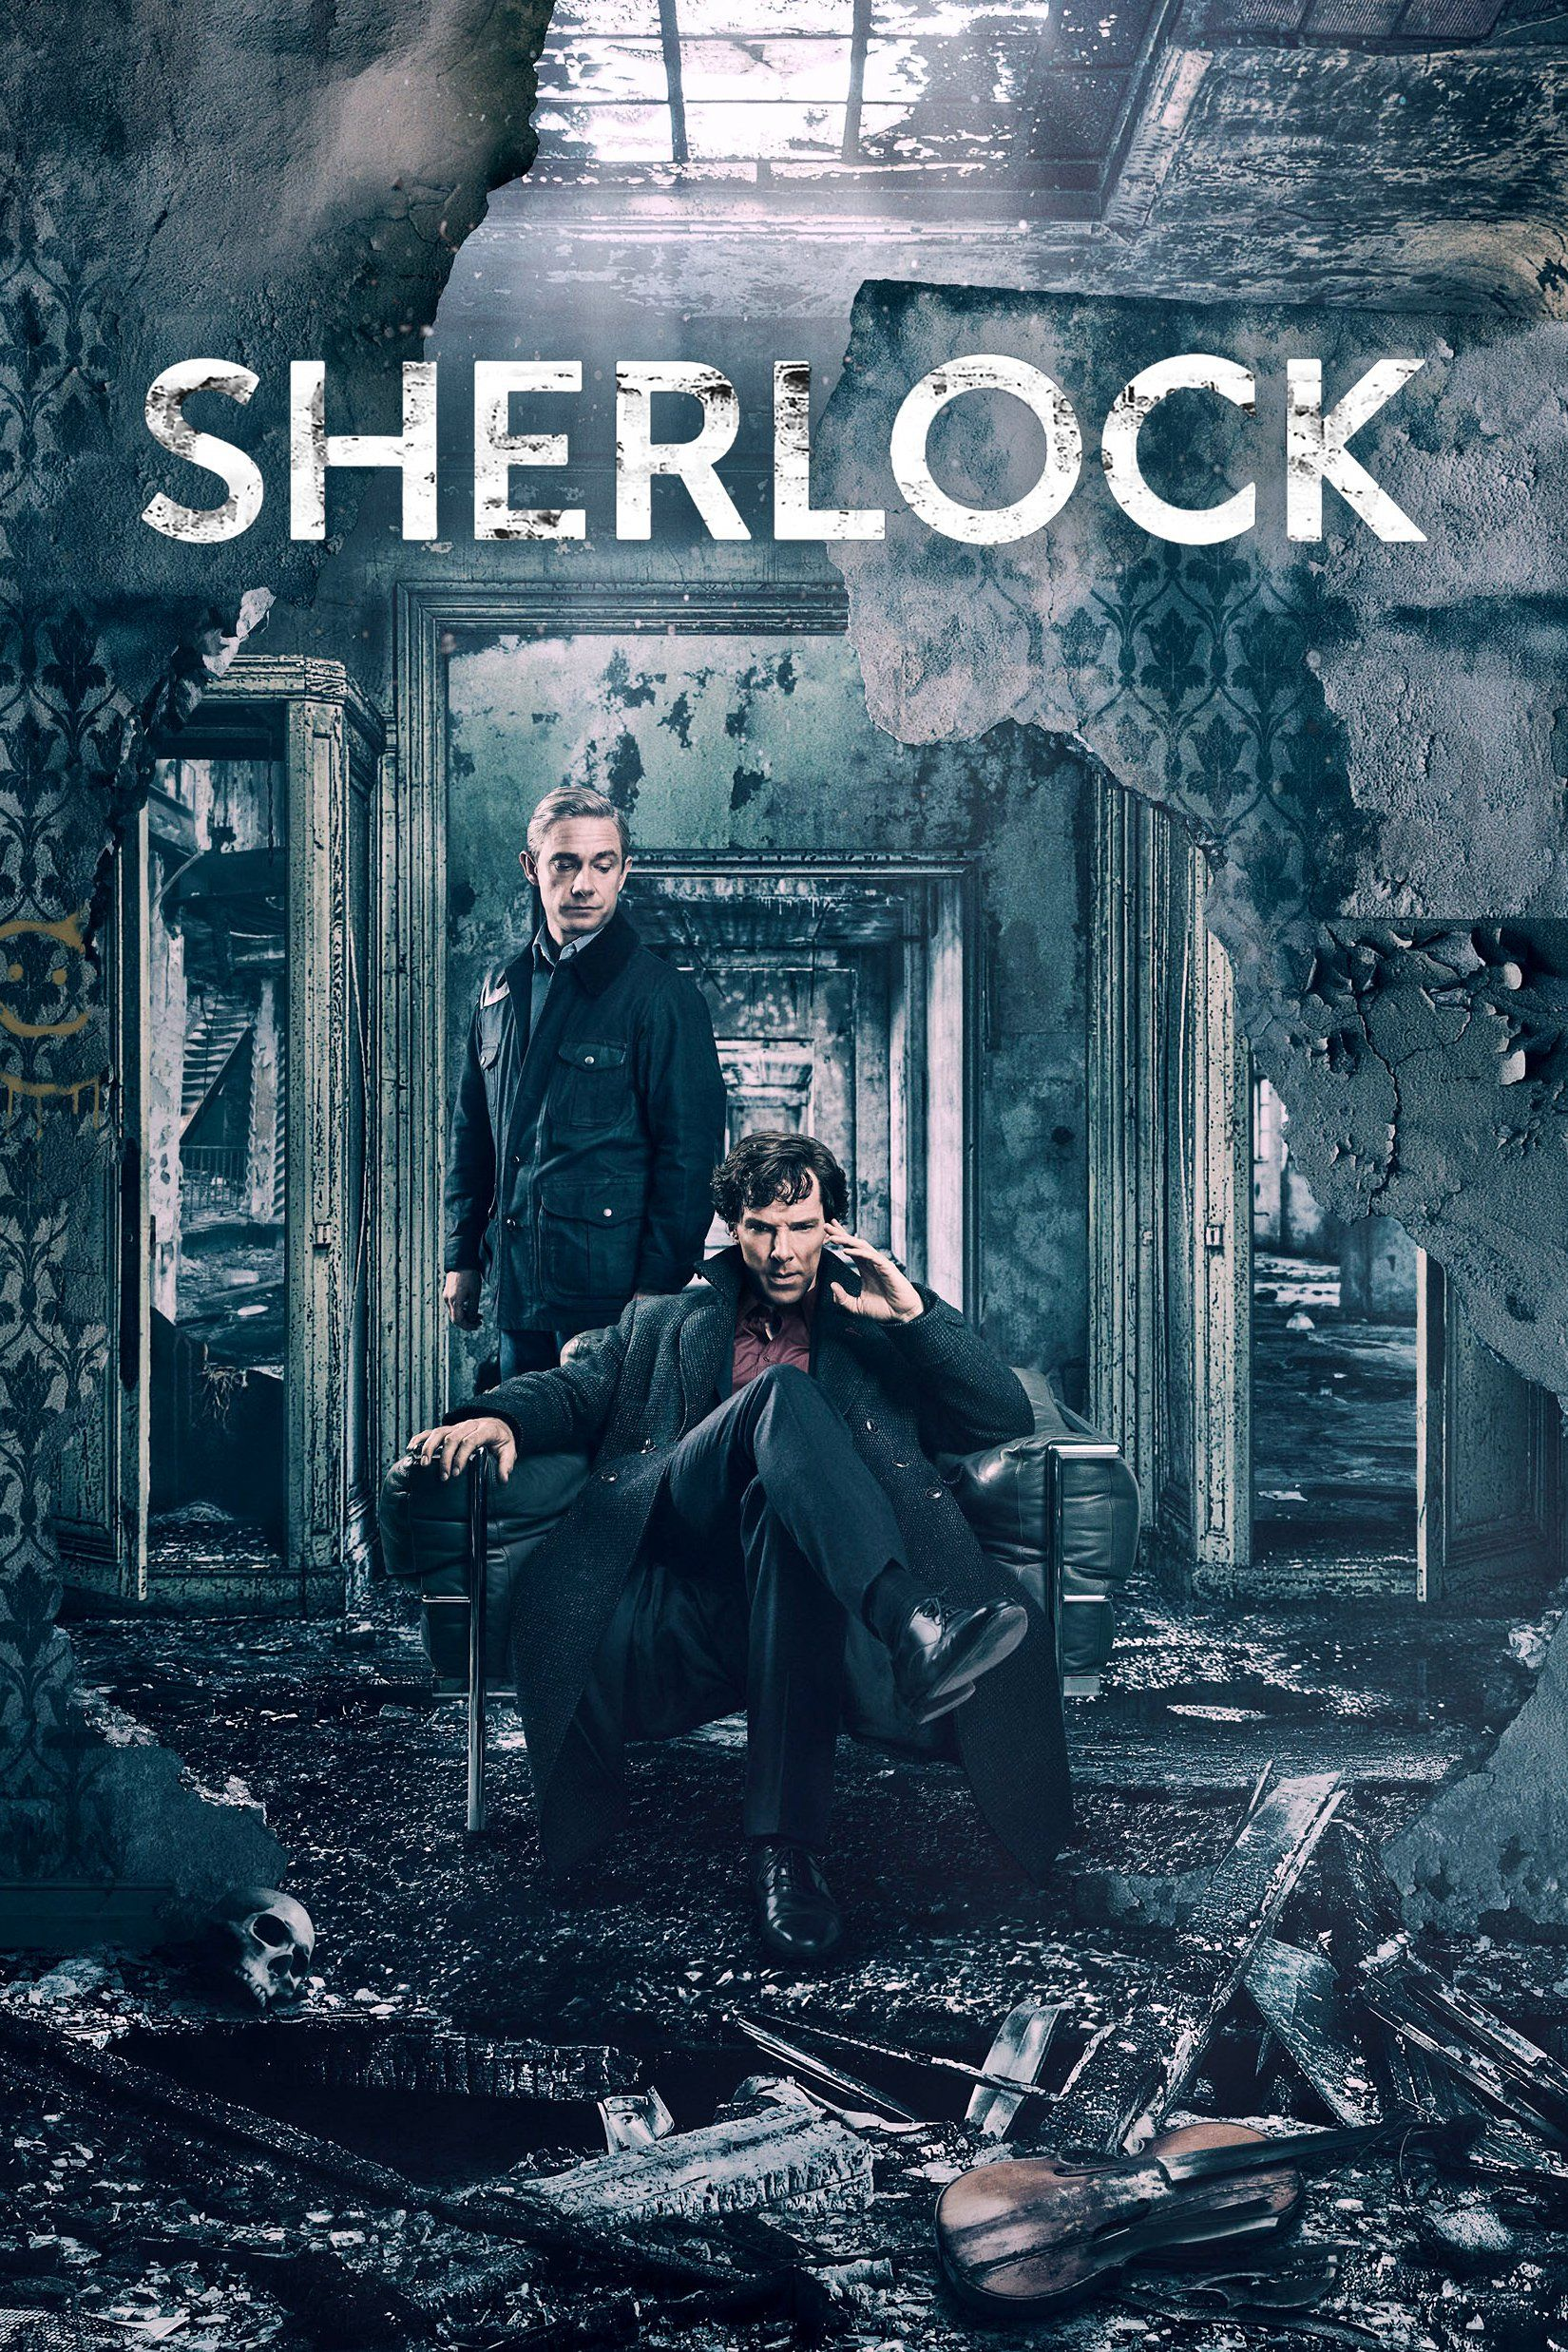 Sherlock Saison 3 Streaming : sherlock, saison, streaming, Benedict, Cumberbatch, Movies, Shows, SparkViews, Sherlock, Season,, Season, Series